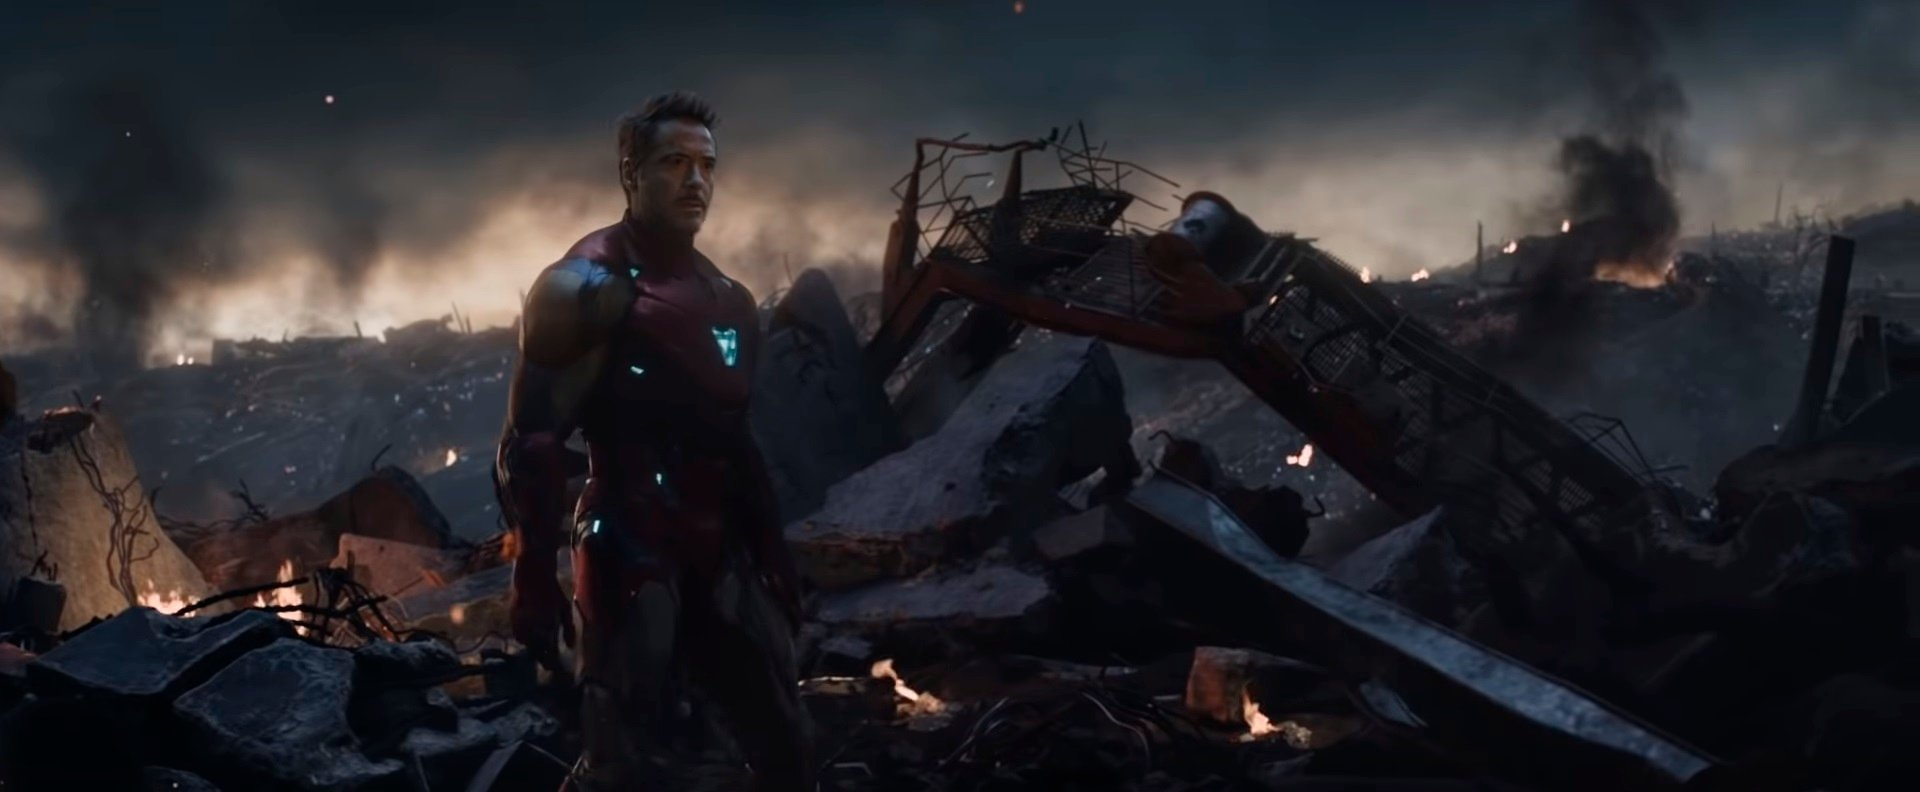 Marvel Fans Are Already Selling Avengers: Endgame Tickets ...